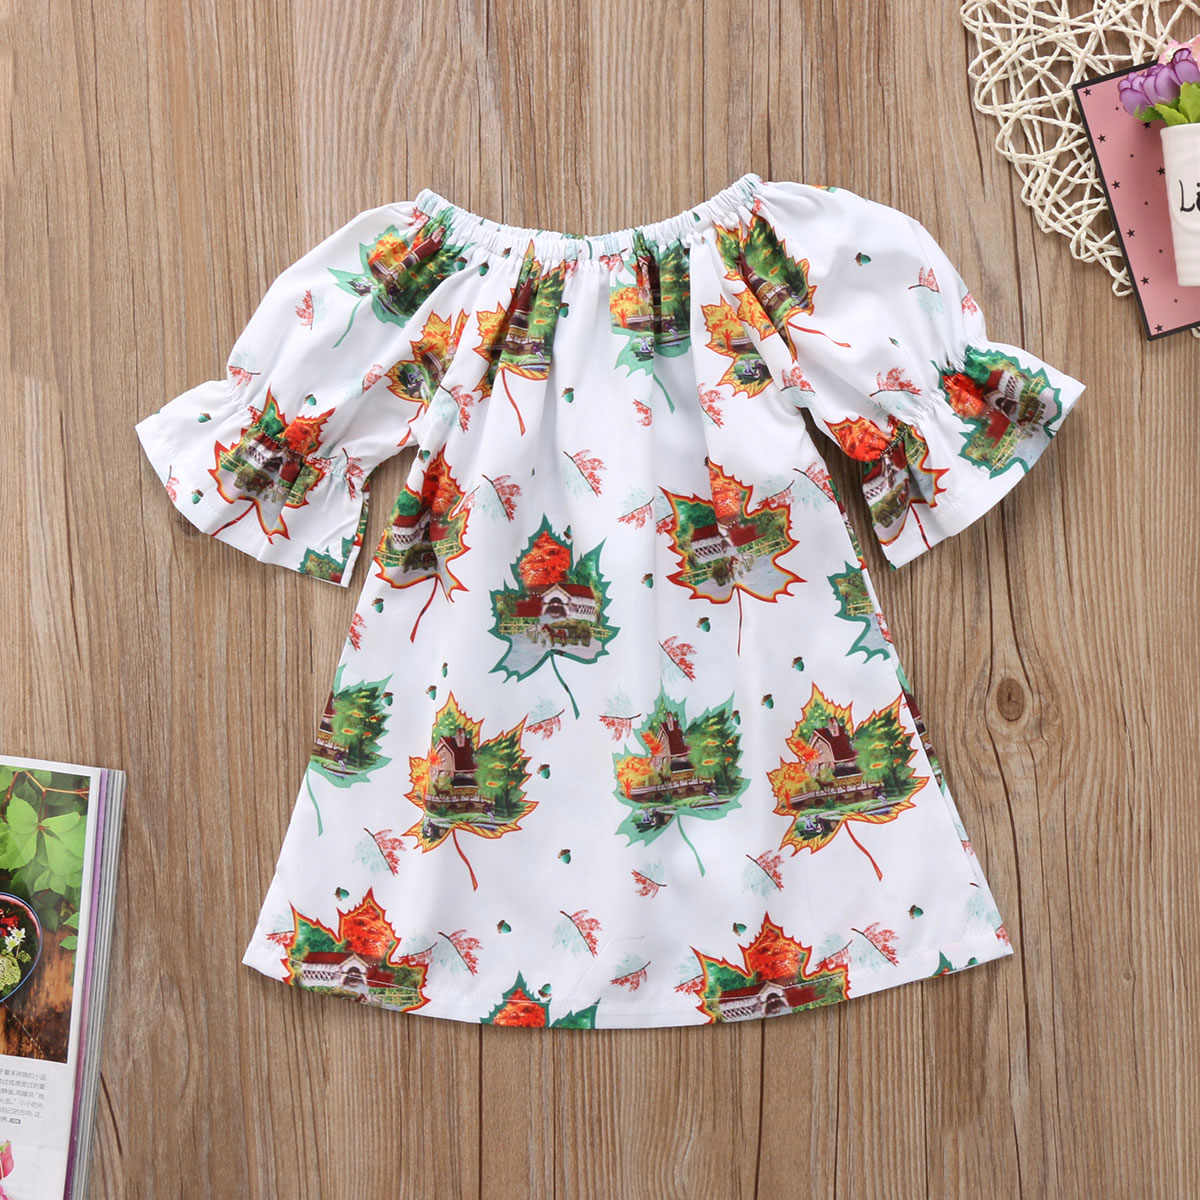 c657b41e4 ... Xmas Toddler Kids Girls Maple Leafs Sundress Party Dress Clothes Casual  Adorable Baby Girl Summer Cartoon ...